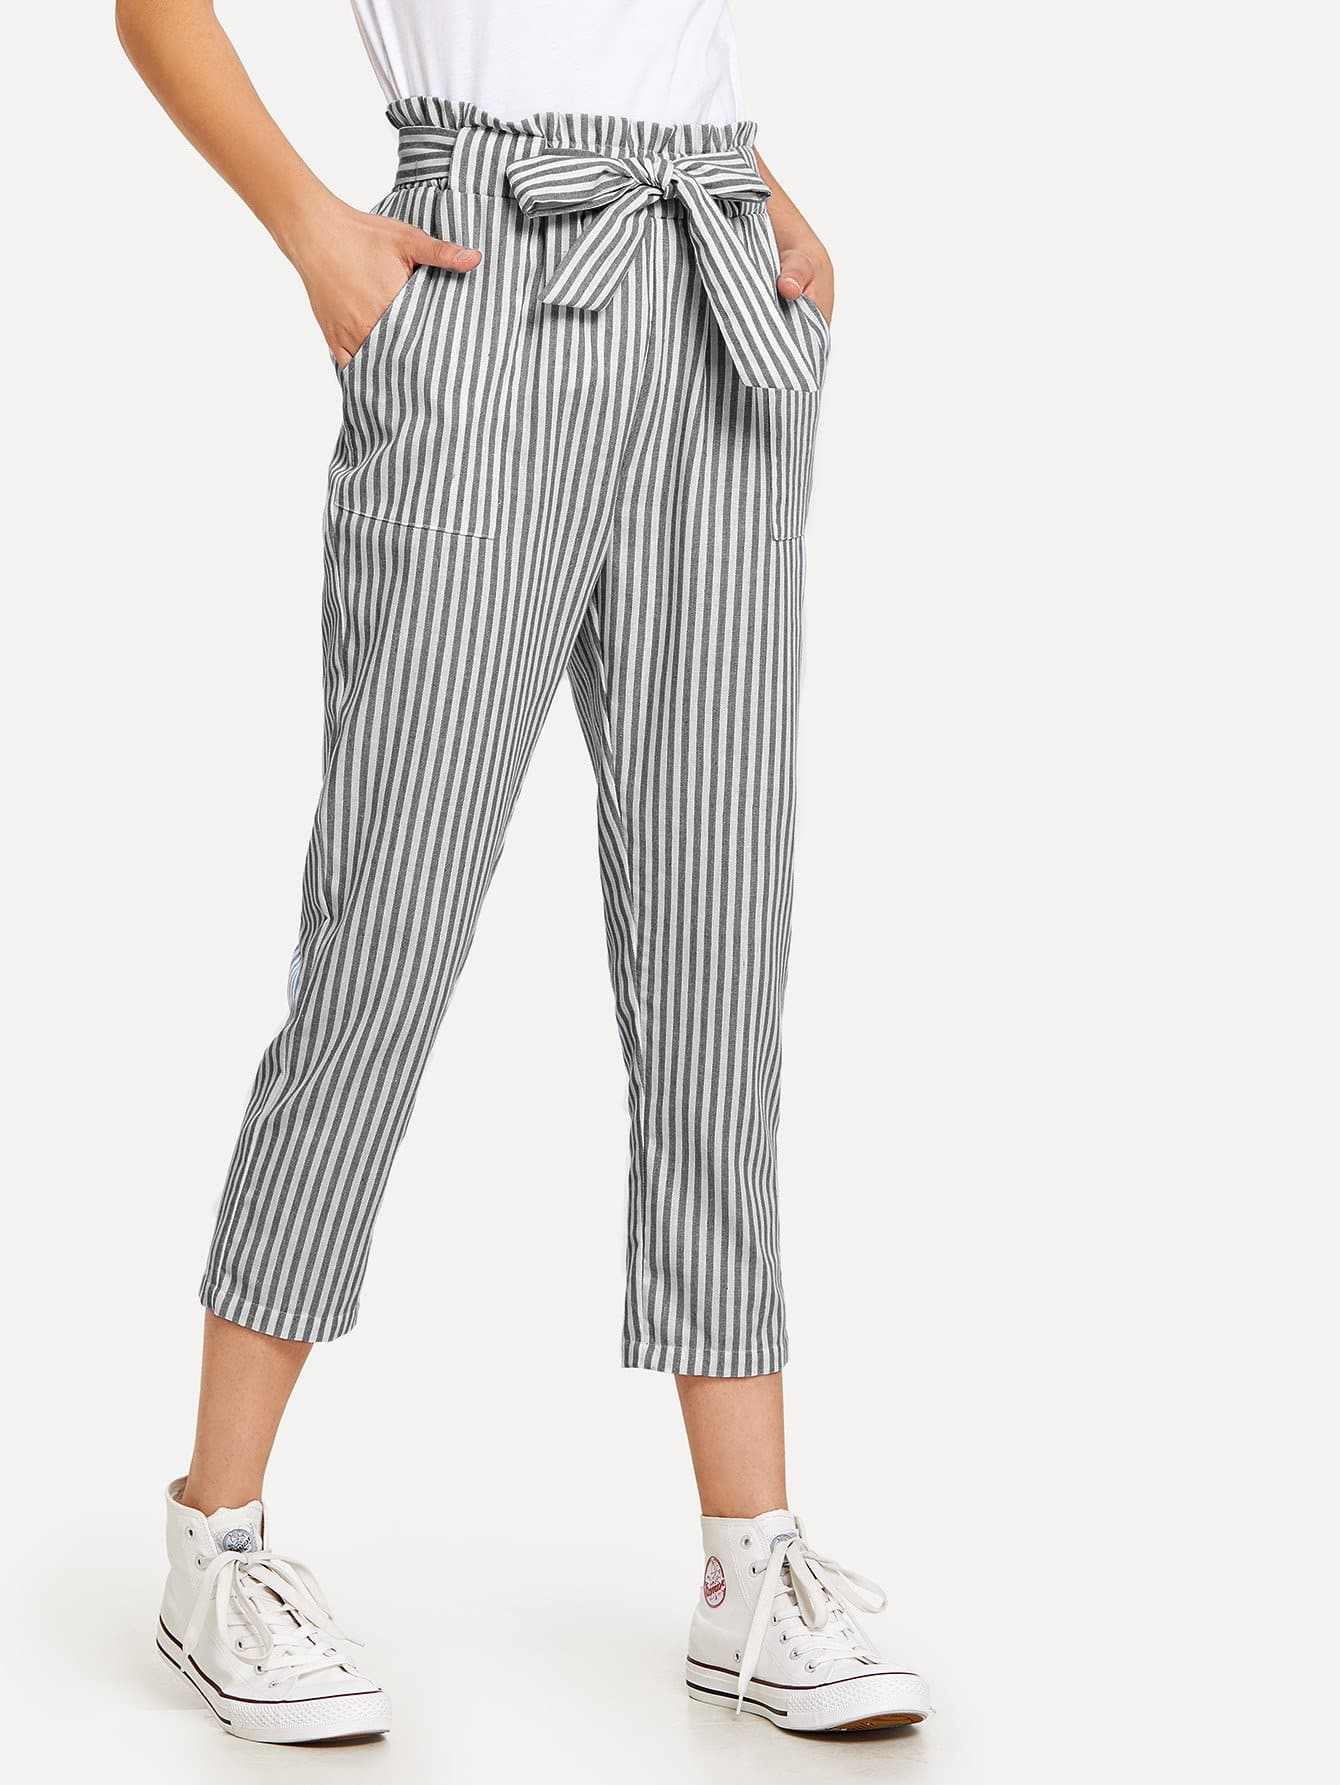 Striped Knot Front Pants knot front fit